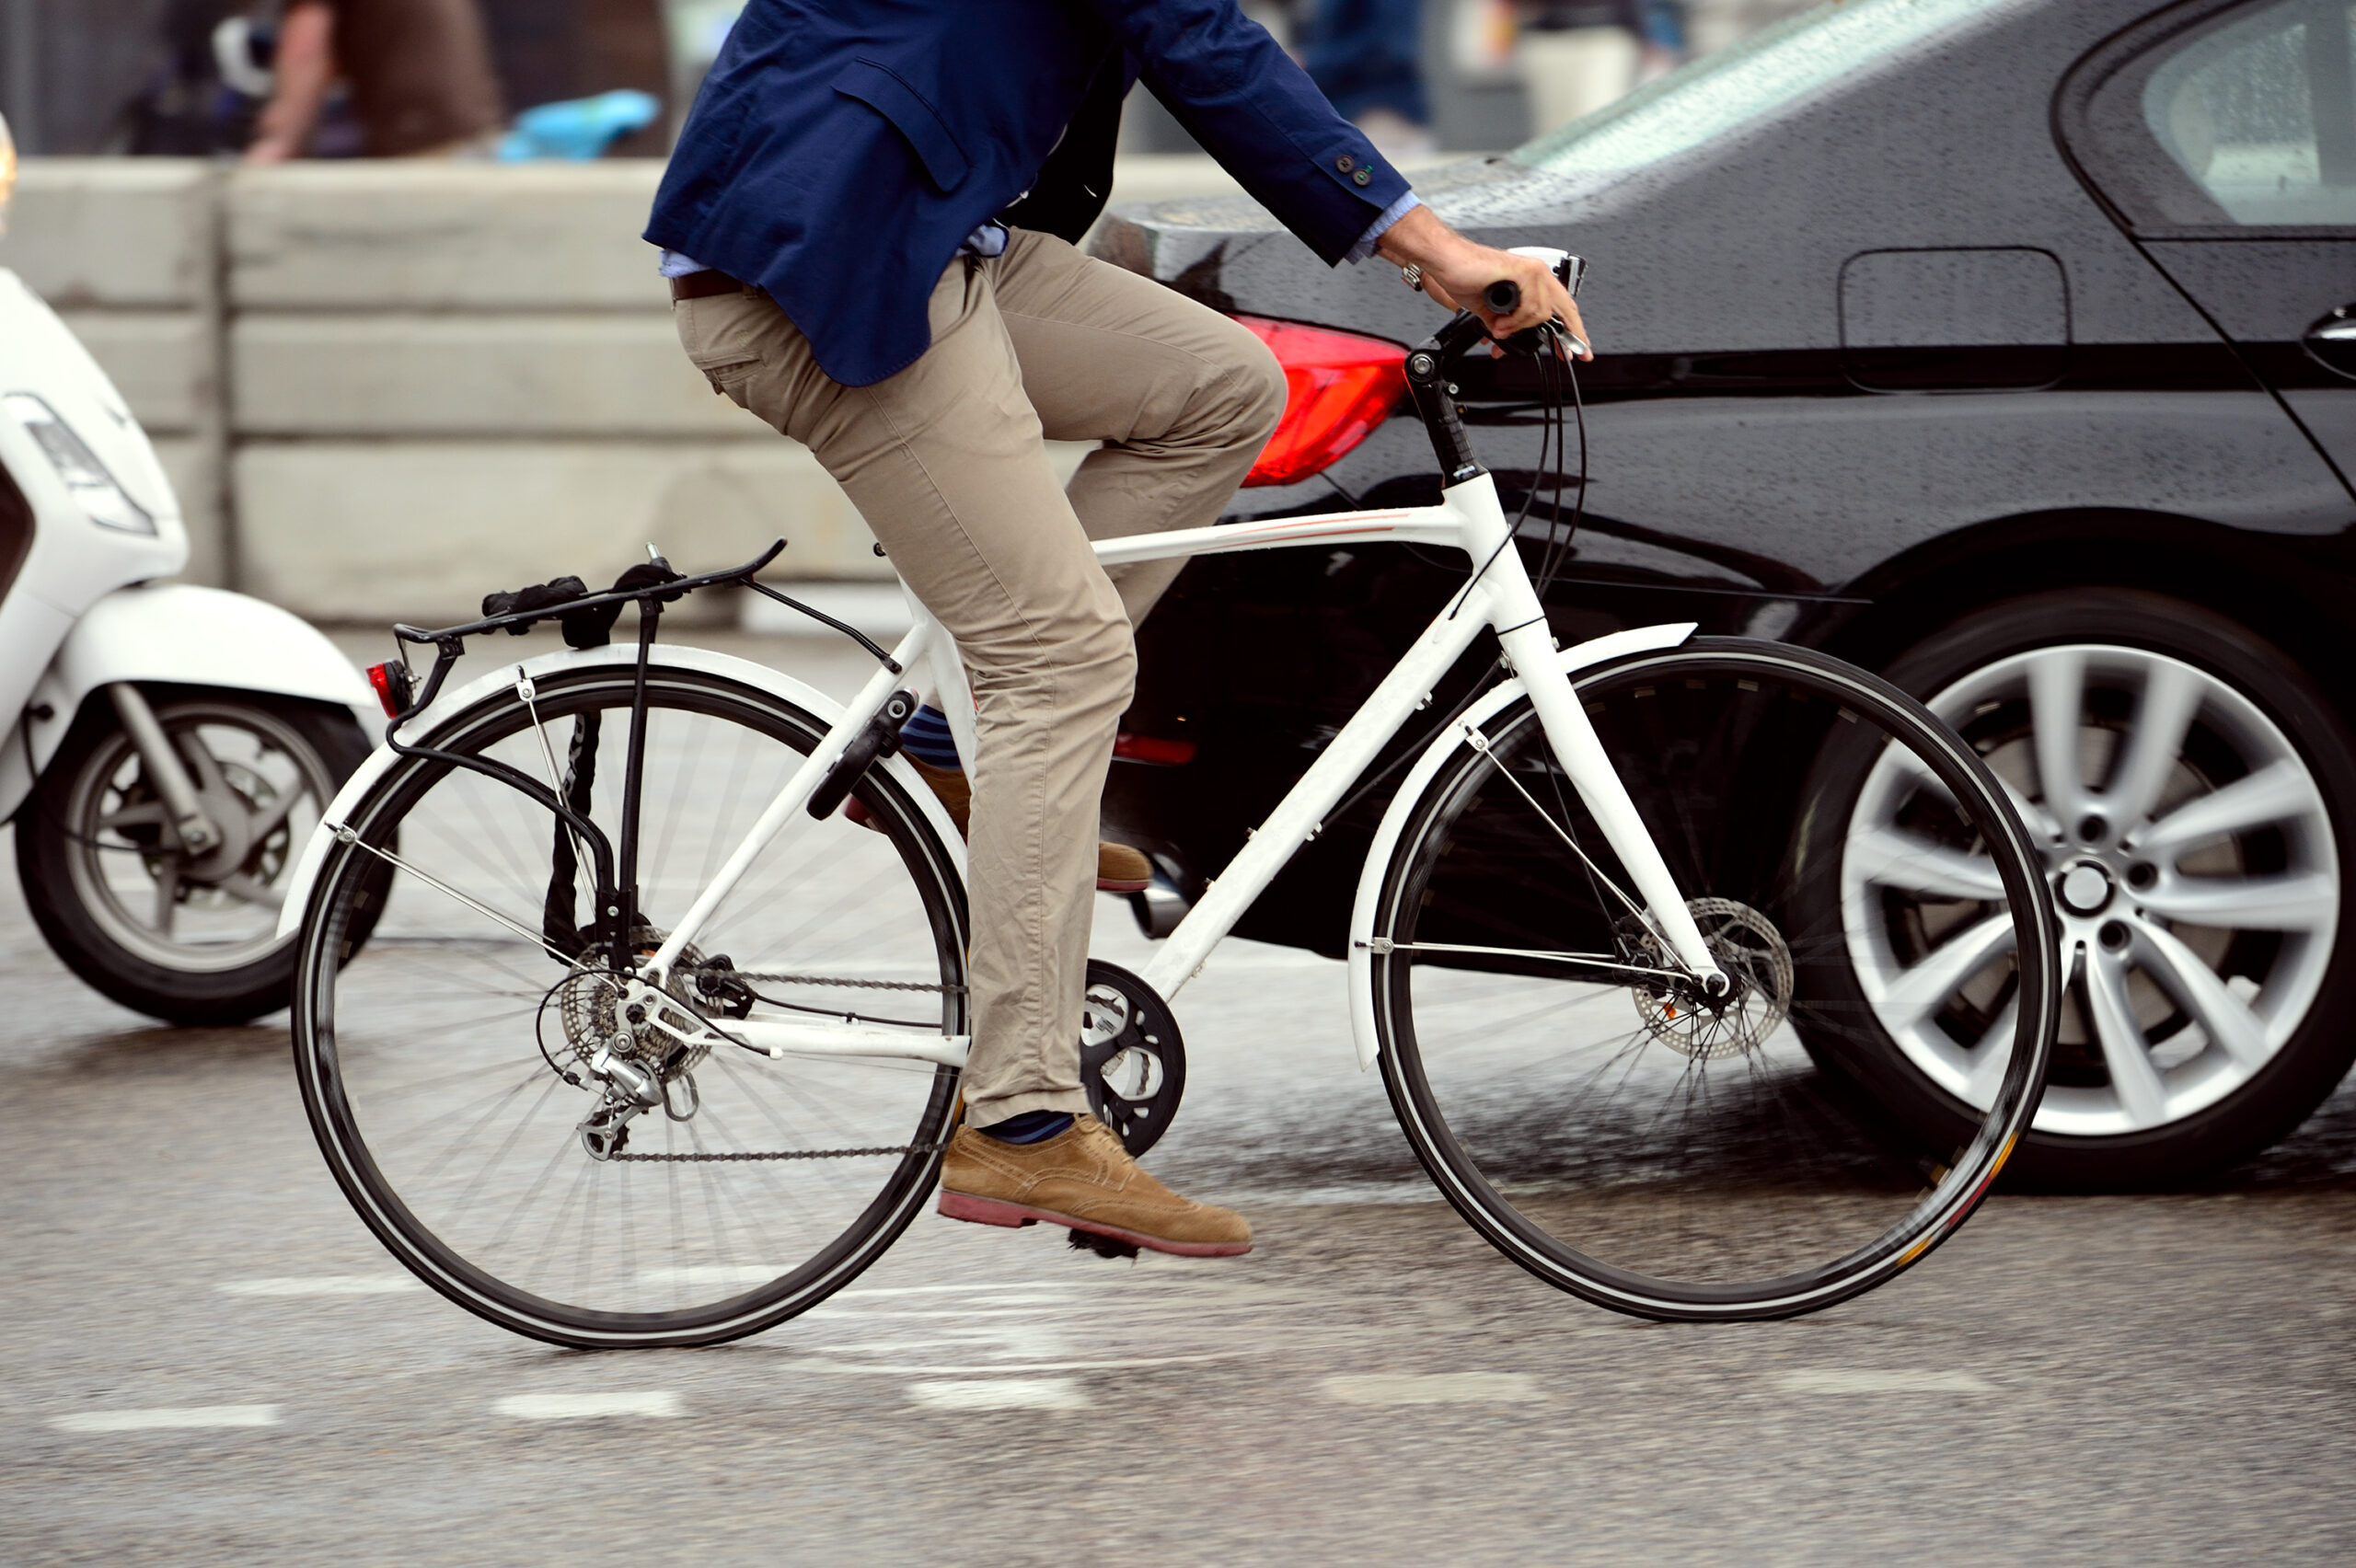 The New Way to Commute